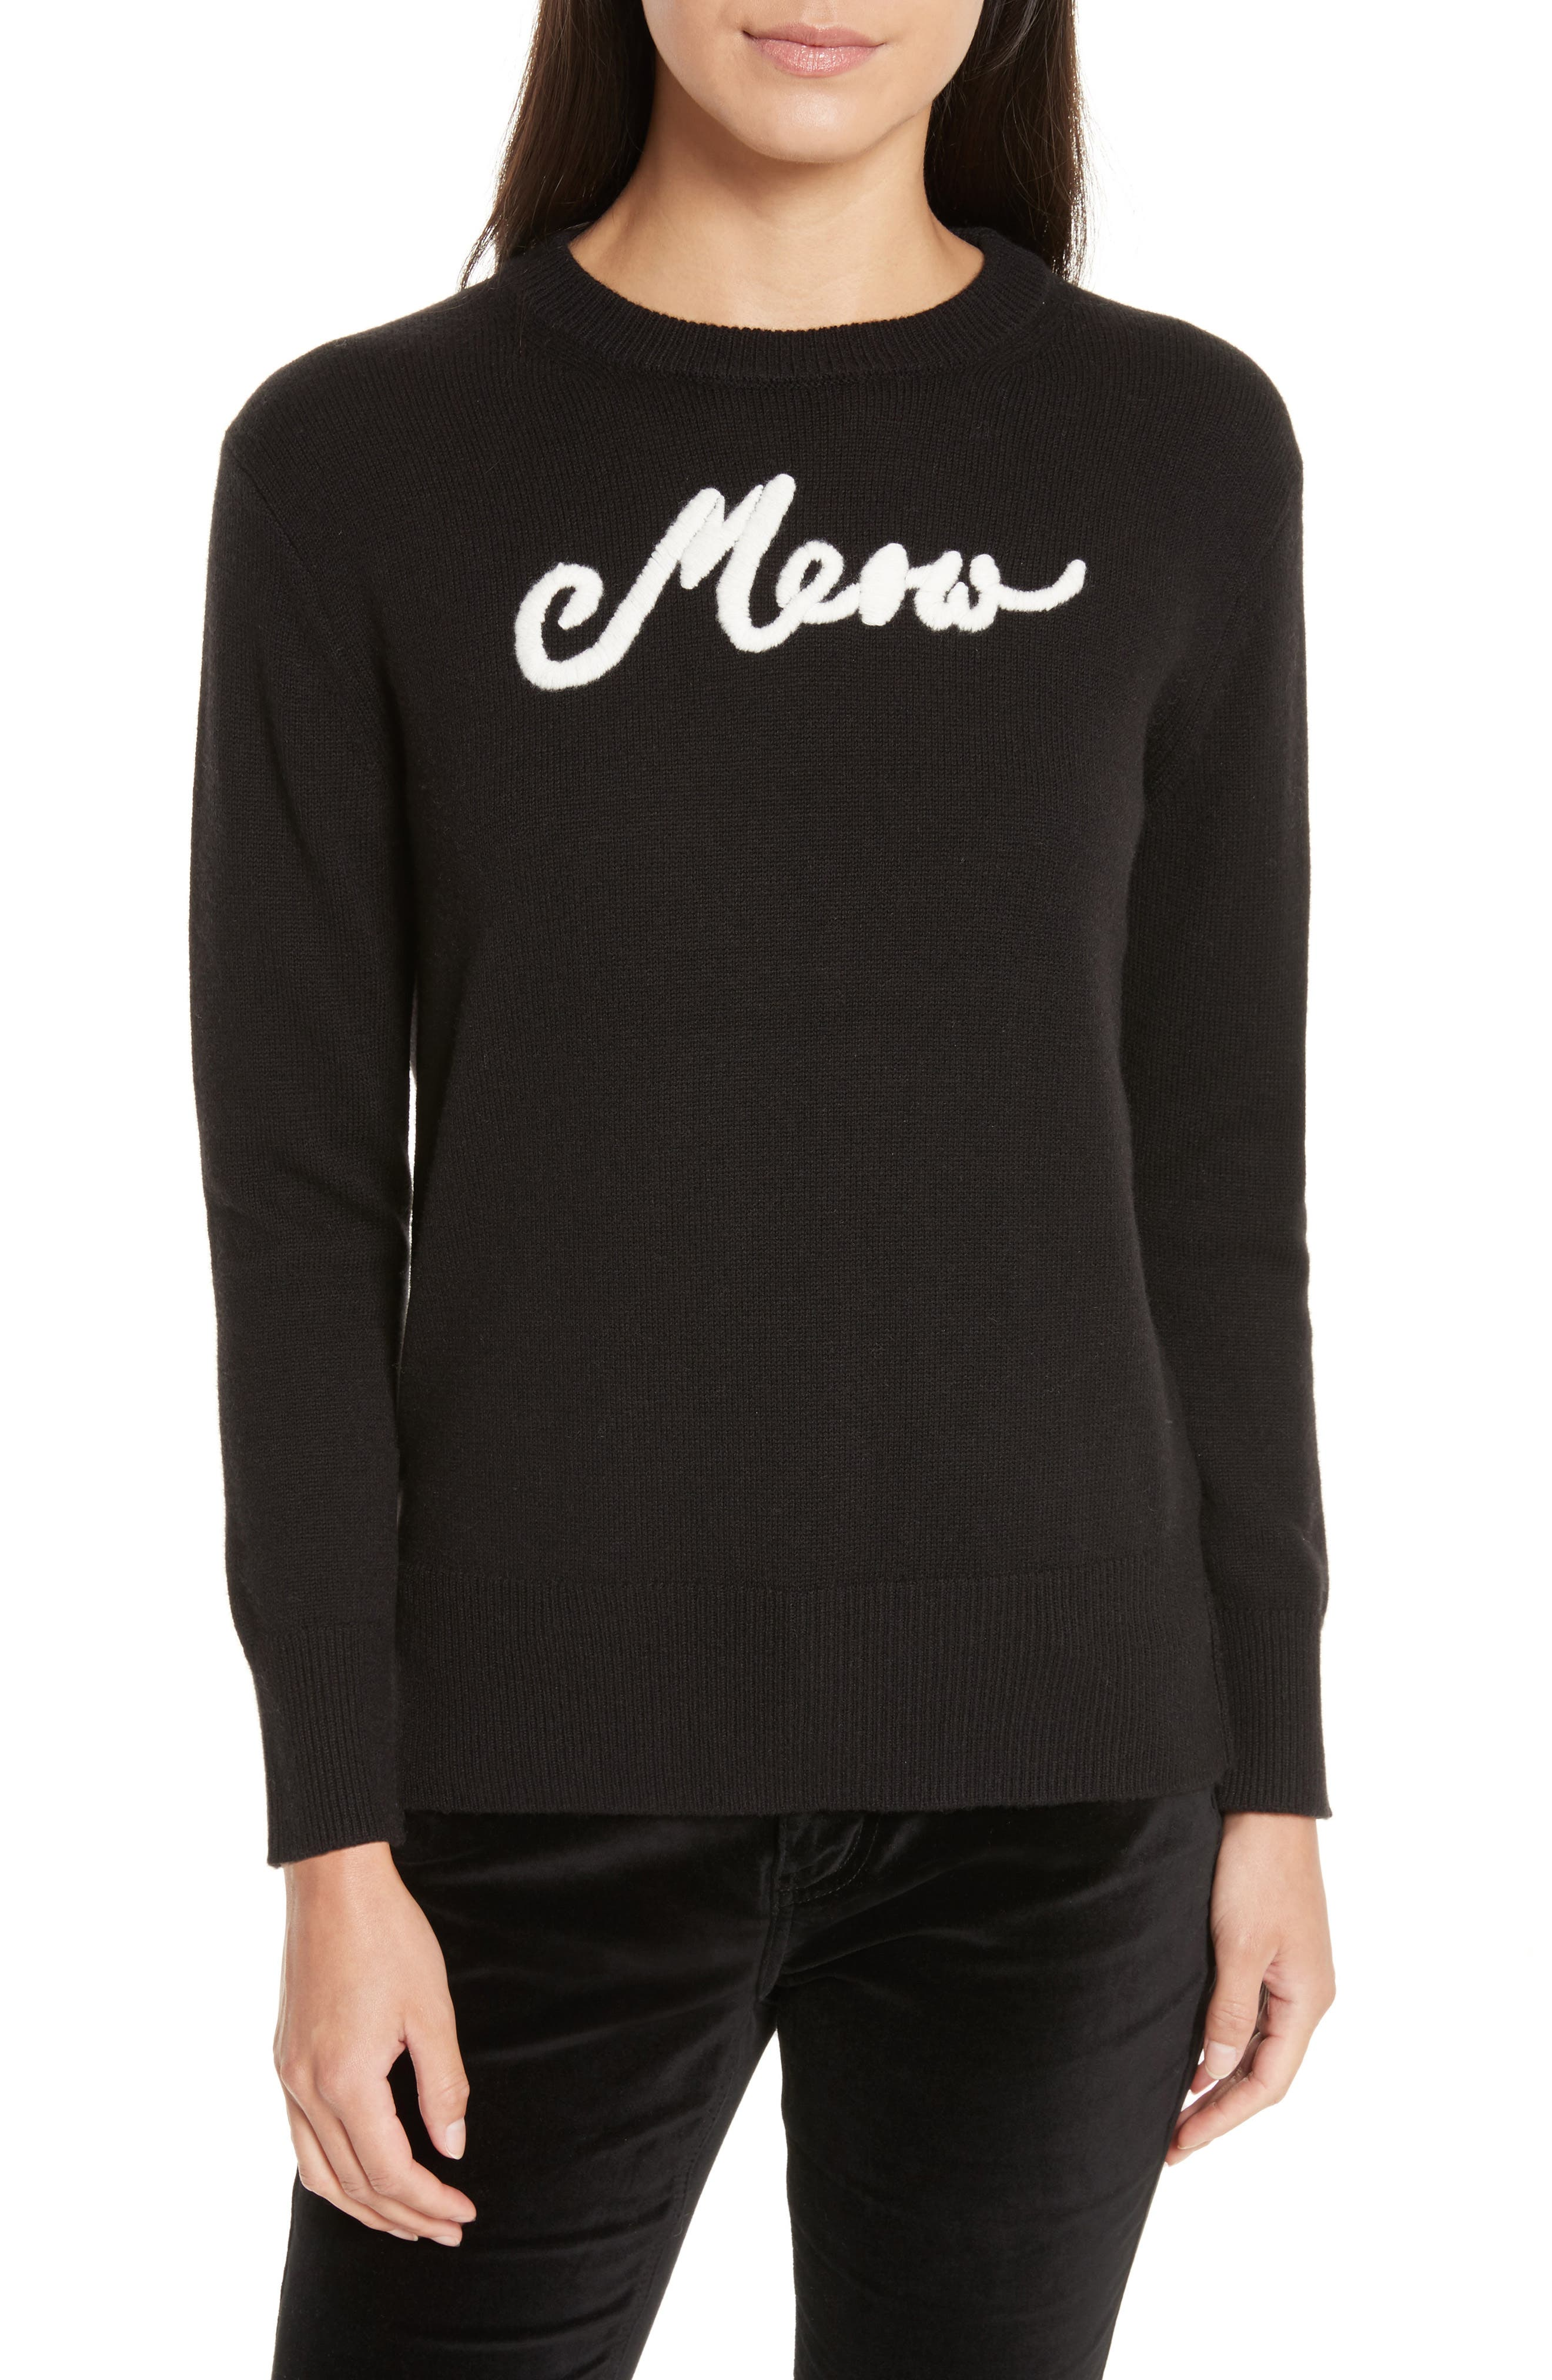 meow sweater,                         Main,                         color, 001